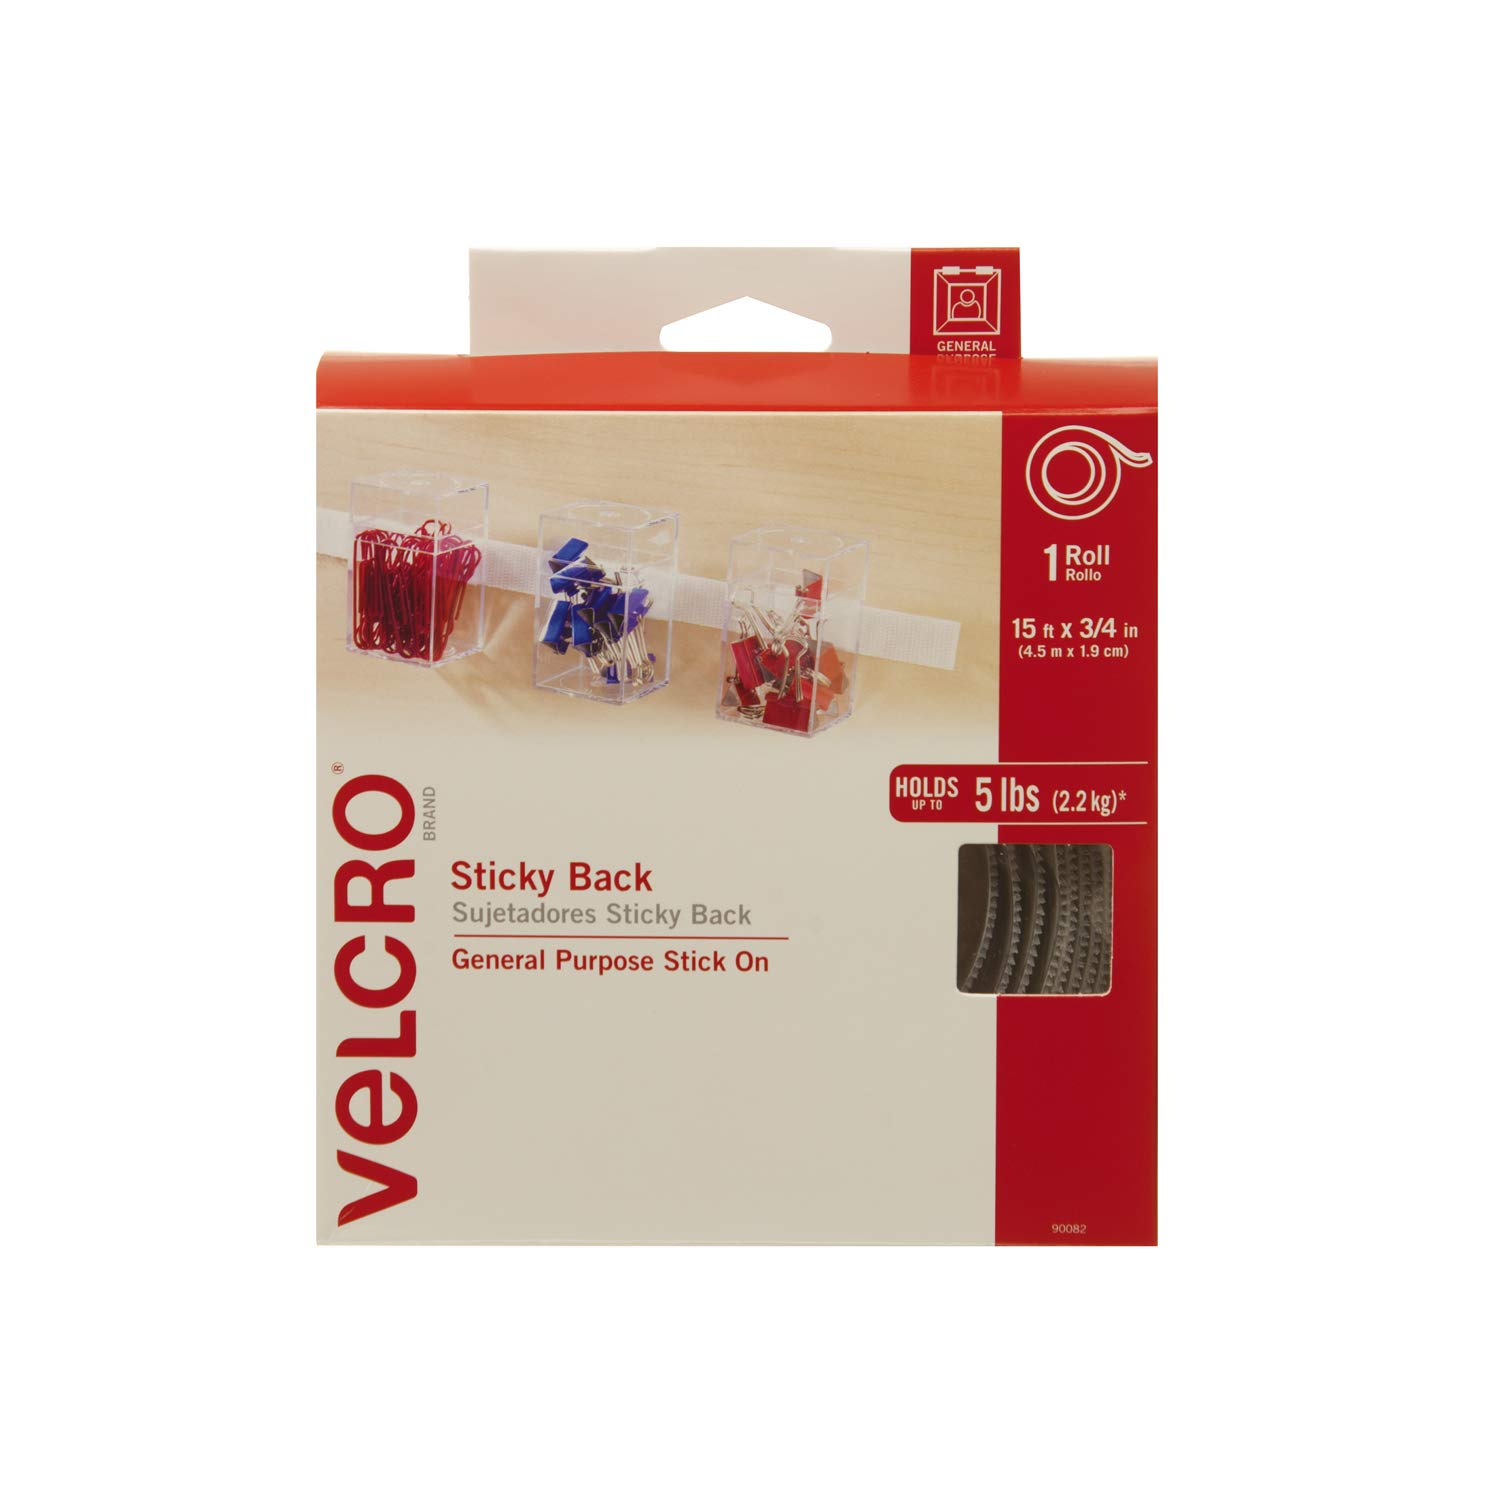 VELCRO Brand - Sticky Back Hook and Loop Fasteners| General Purpose Peel & Stick | Perfect for Home or Office | 15ft x 3/4in Roll | White